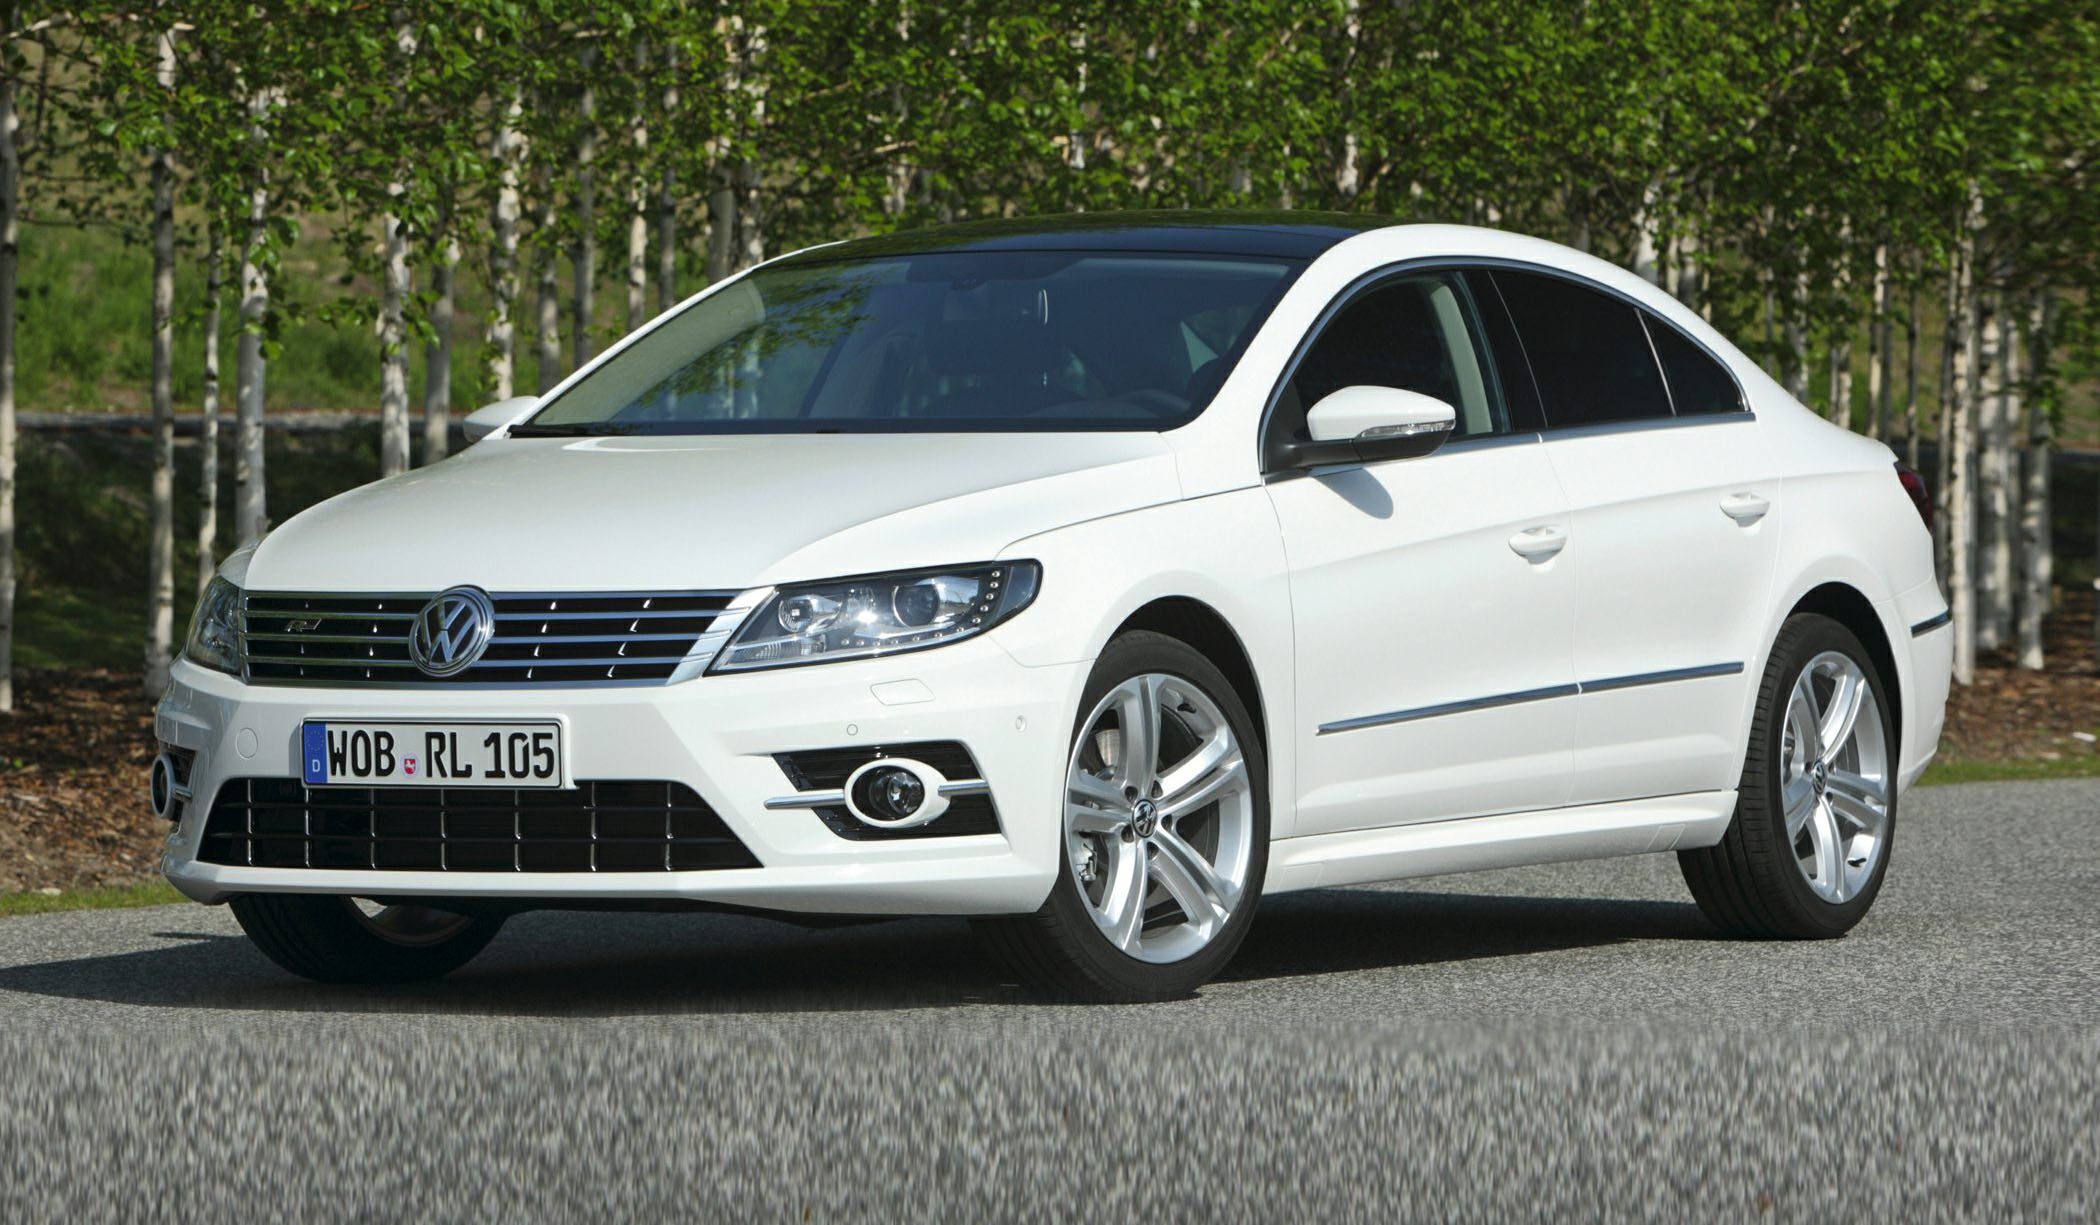 volkswagen cc images reverse search. Black Bedroom Furniture Sets. Home Design Ideas